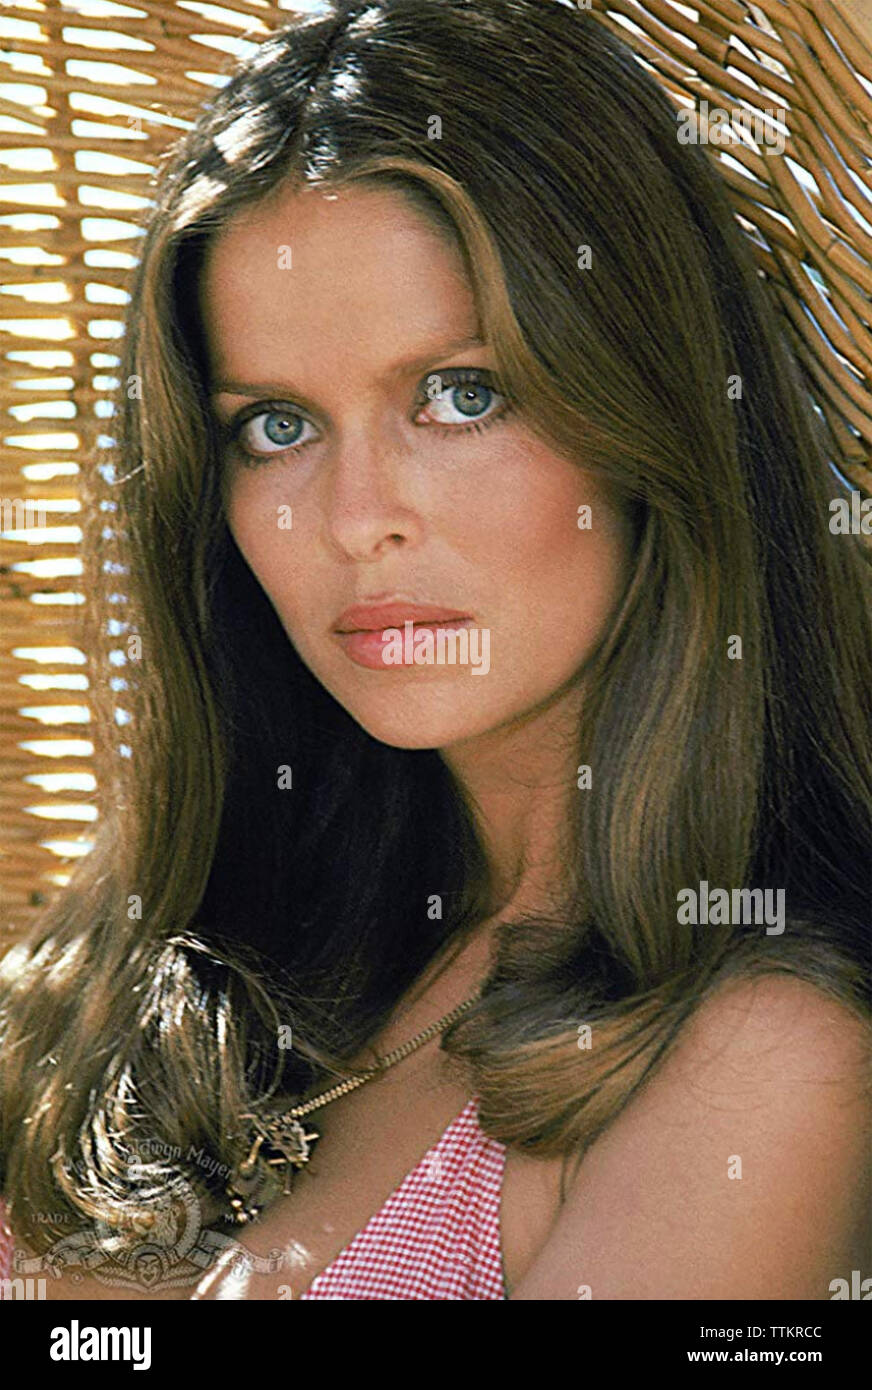 THE SPY WHO LOVED ME 1977 Eon Films production Barbara Bach - Stock Image